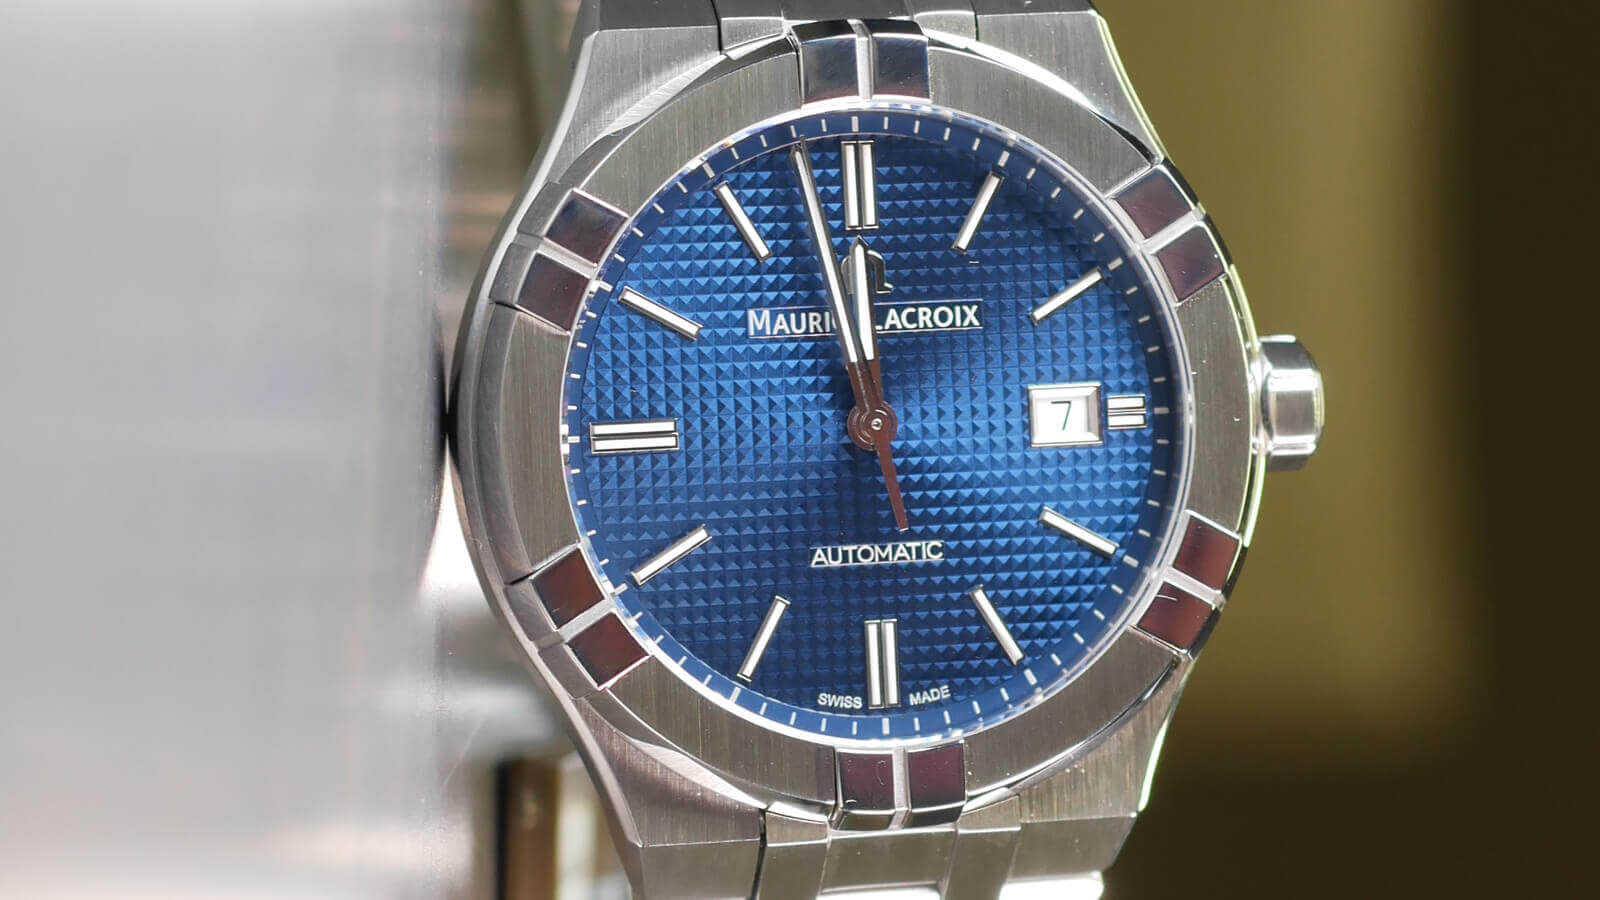 Maurice Lacroix Aikon Automatic - featuring Clous de Paris dial and EasyChange quick bracelet change system